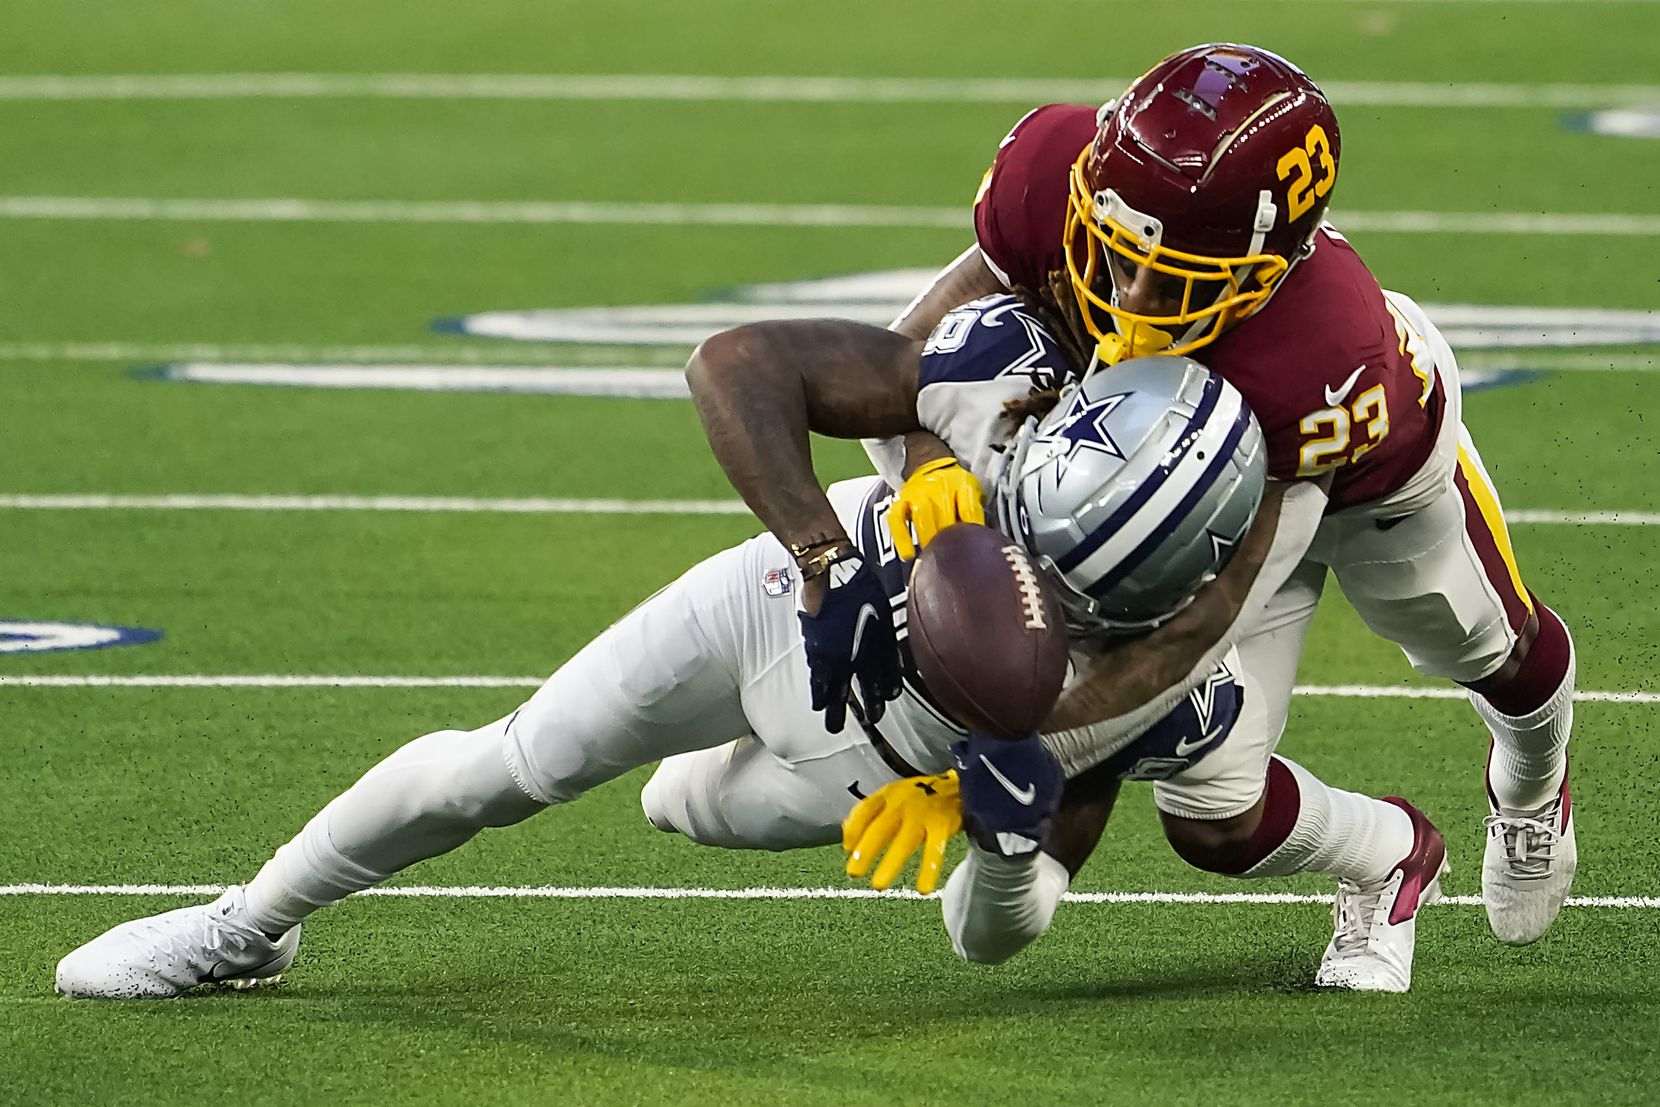 Washington Football Team cornerback Ronald Darby (23) breaks up a pass to Dallas Cowboys wide receiver CeeDee Lamb (88) on a fourth-and-one play during the second quarter of an NFL football game at AT&T Stadium on Thursday, Nov. 26, 2020, in Arlington. (Smiley N. Pool/The Dallas Morning News)